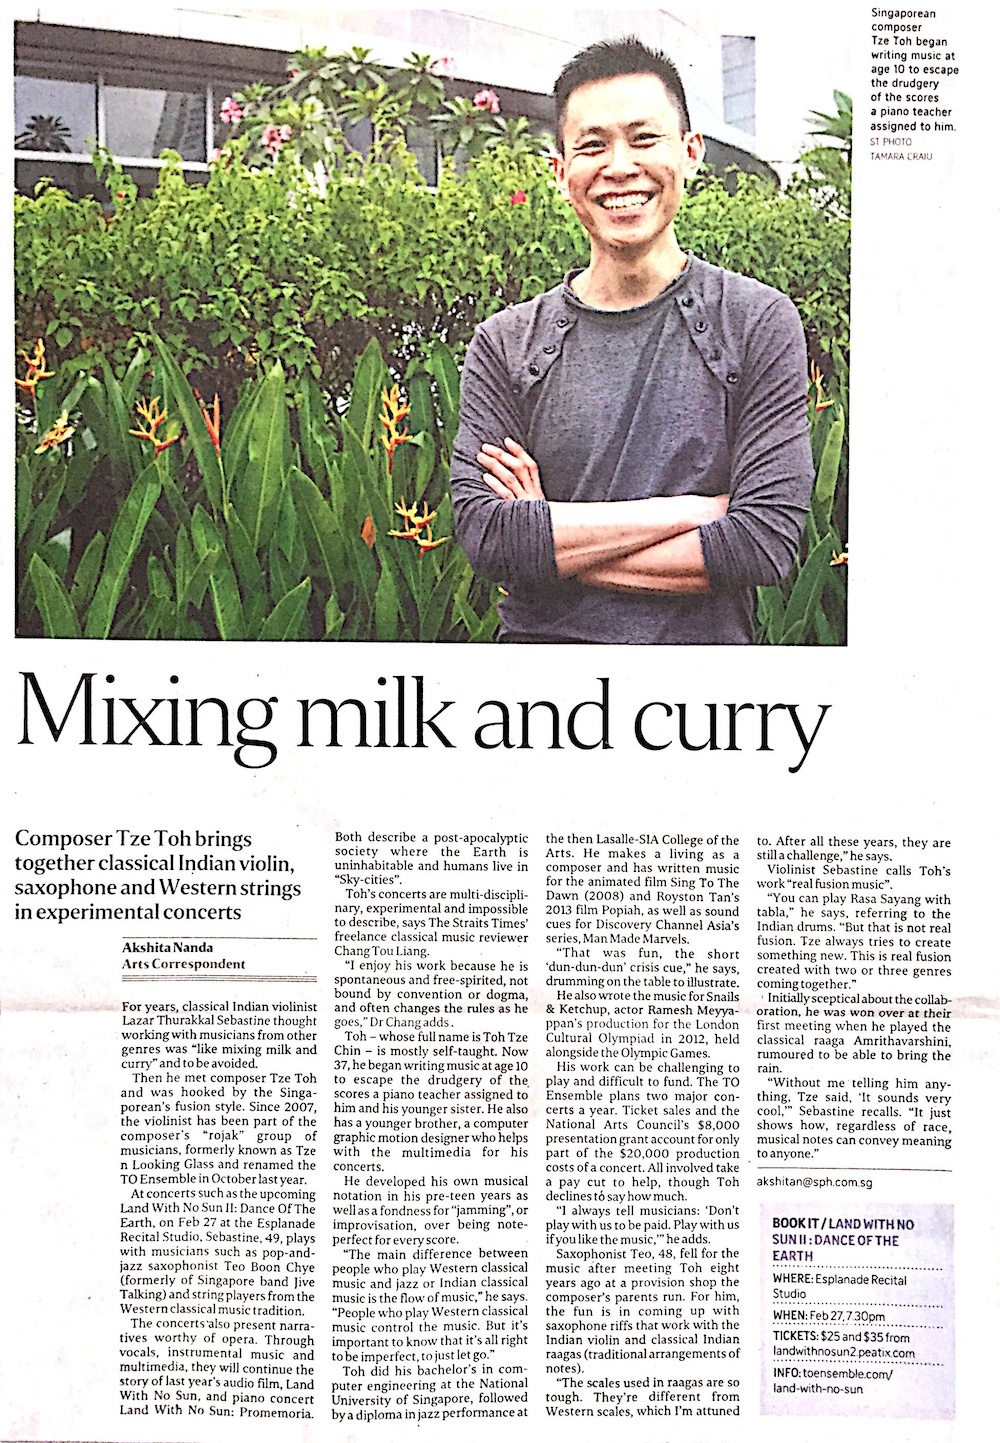 2016 The Straits Times Life!  Interview